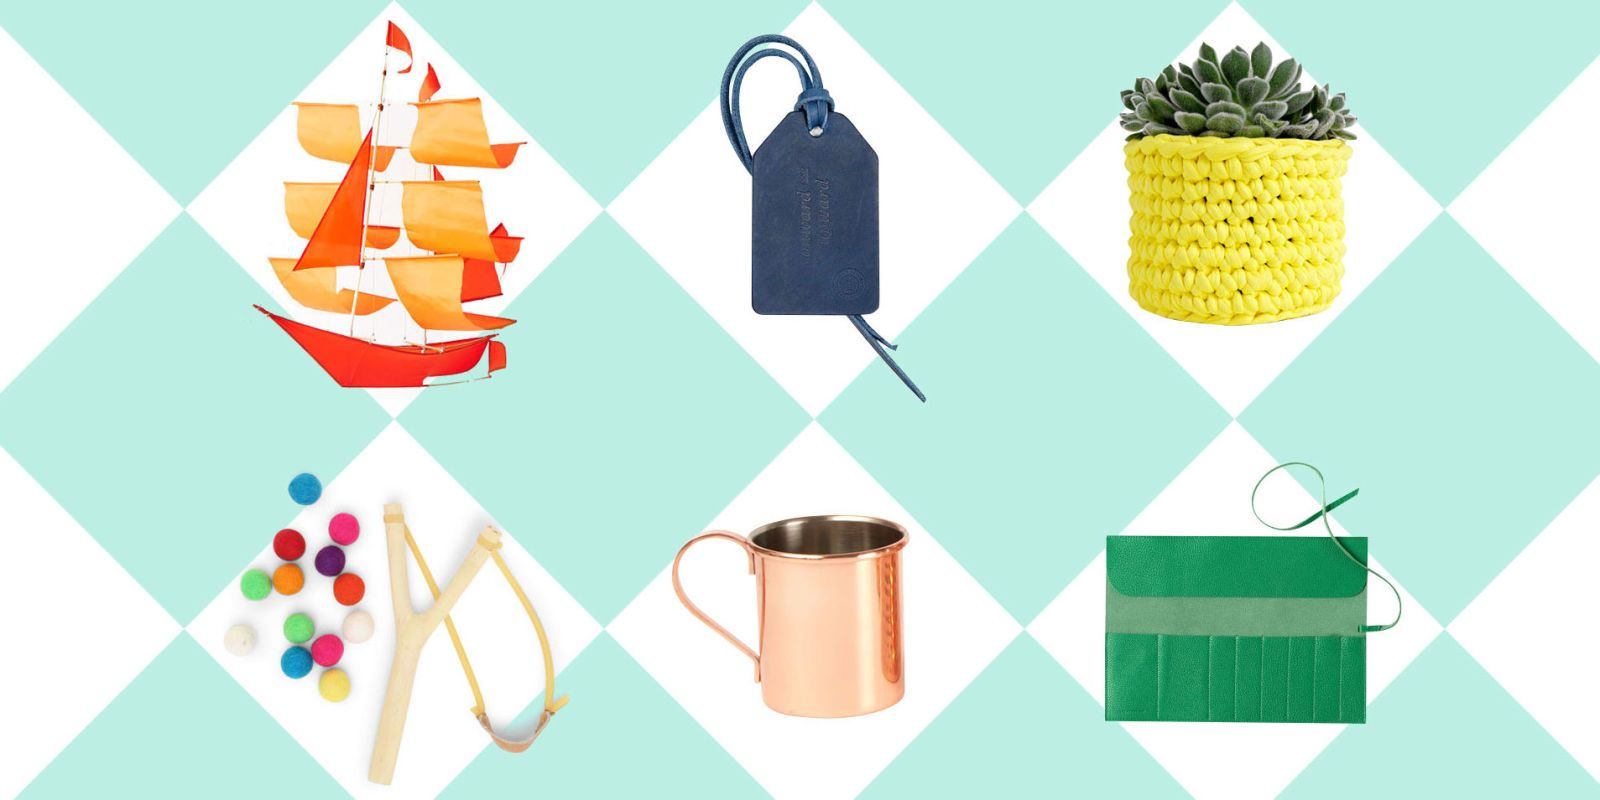 90+ Cool Gifts for Everyone 2017 - Coolest Christmas Gifts Under $50